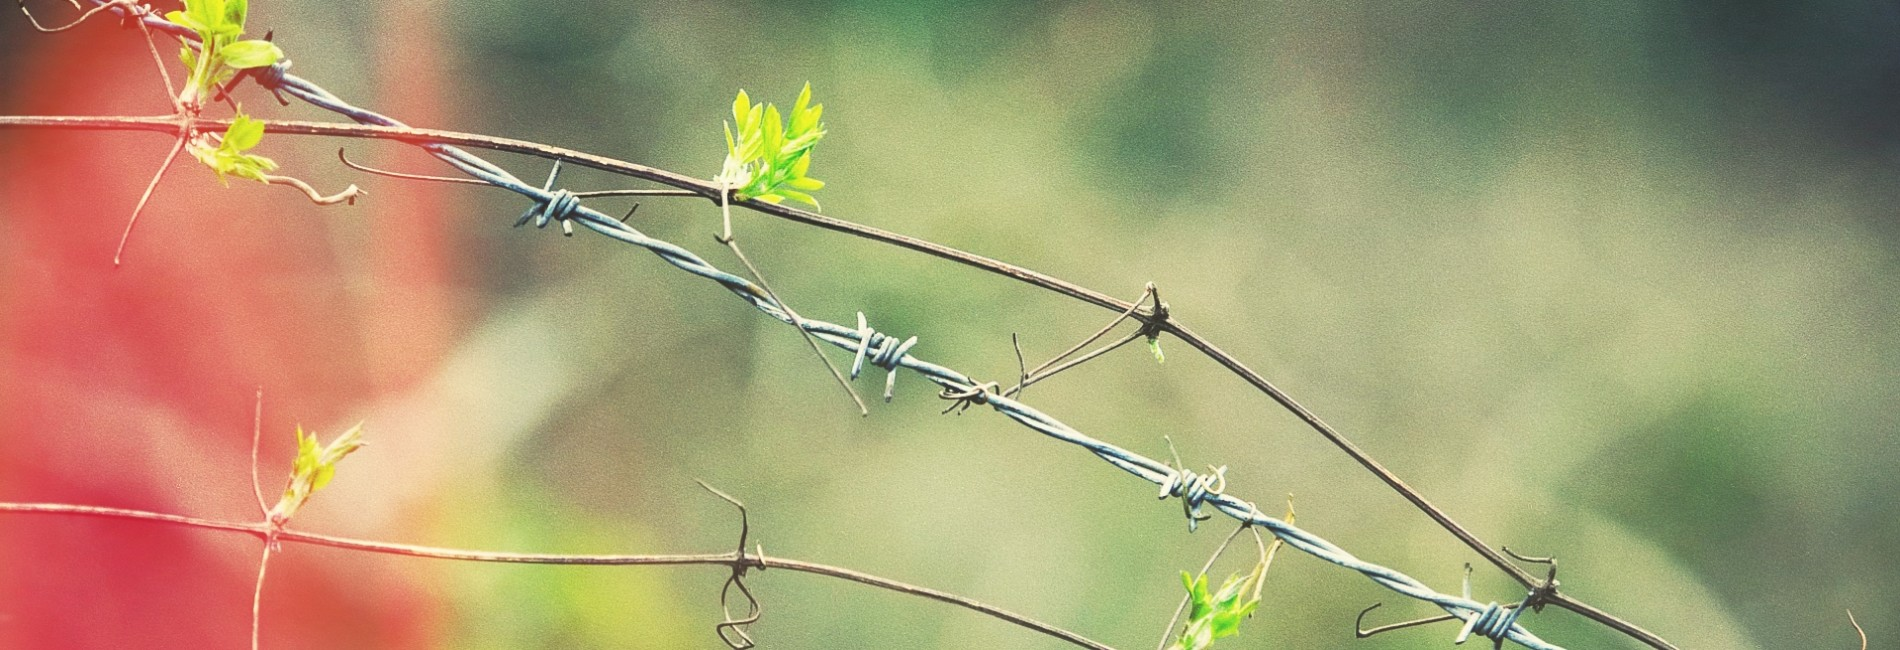 Barbed Wire with Vines